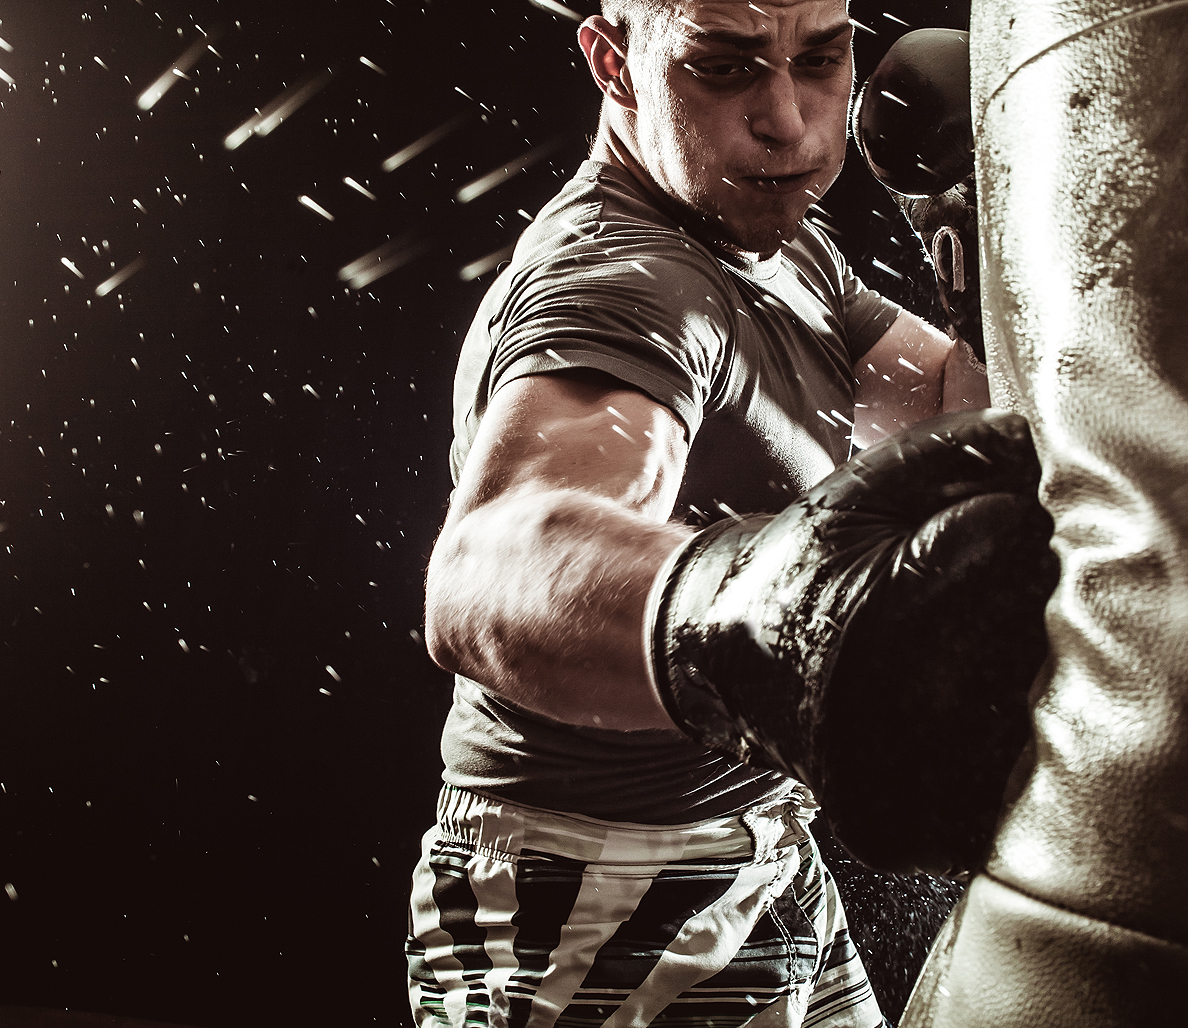 5 savagely hard boxing workouts that'll get you in fighting shape